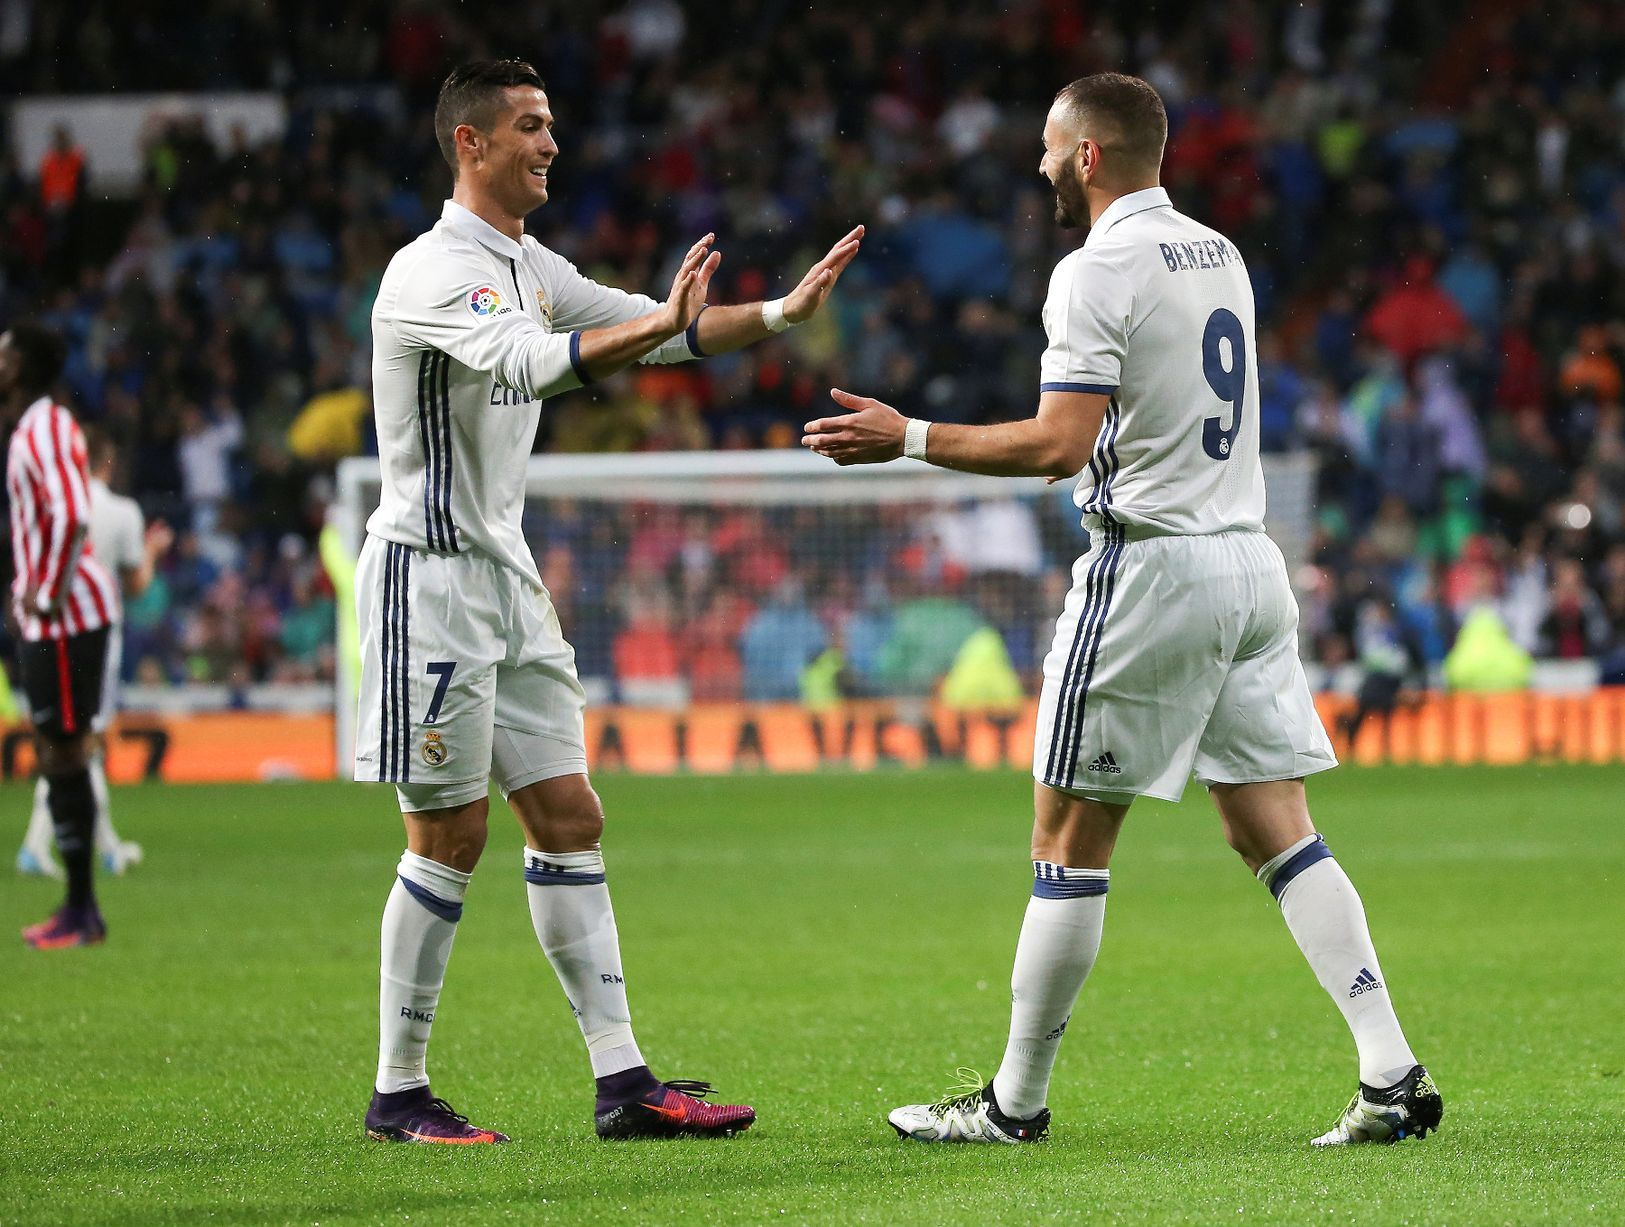 Madrid's Karim Benzema celebrates his goal with teammate Cristiano ...